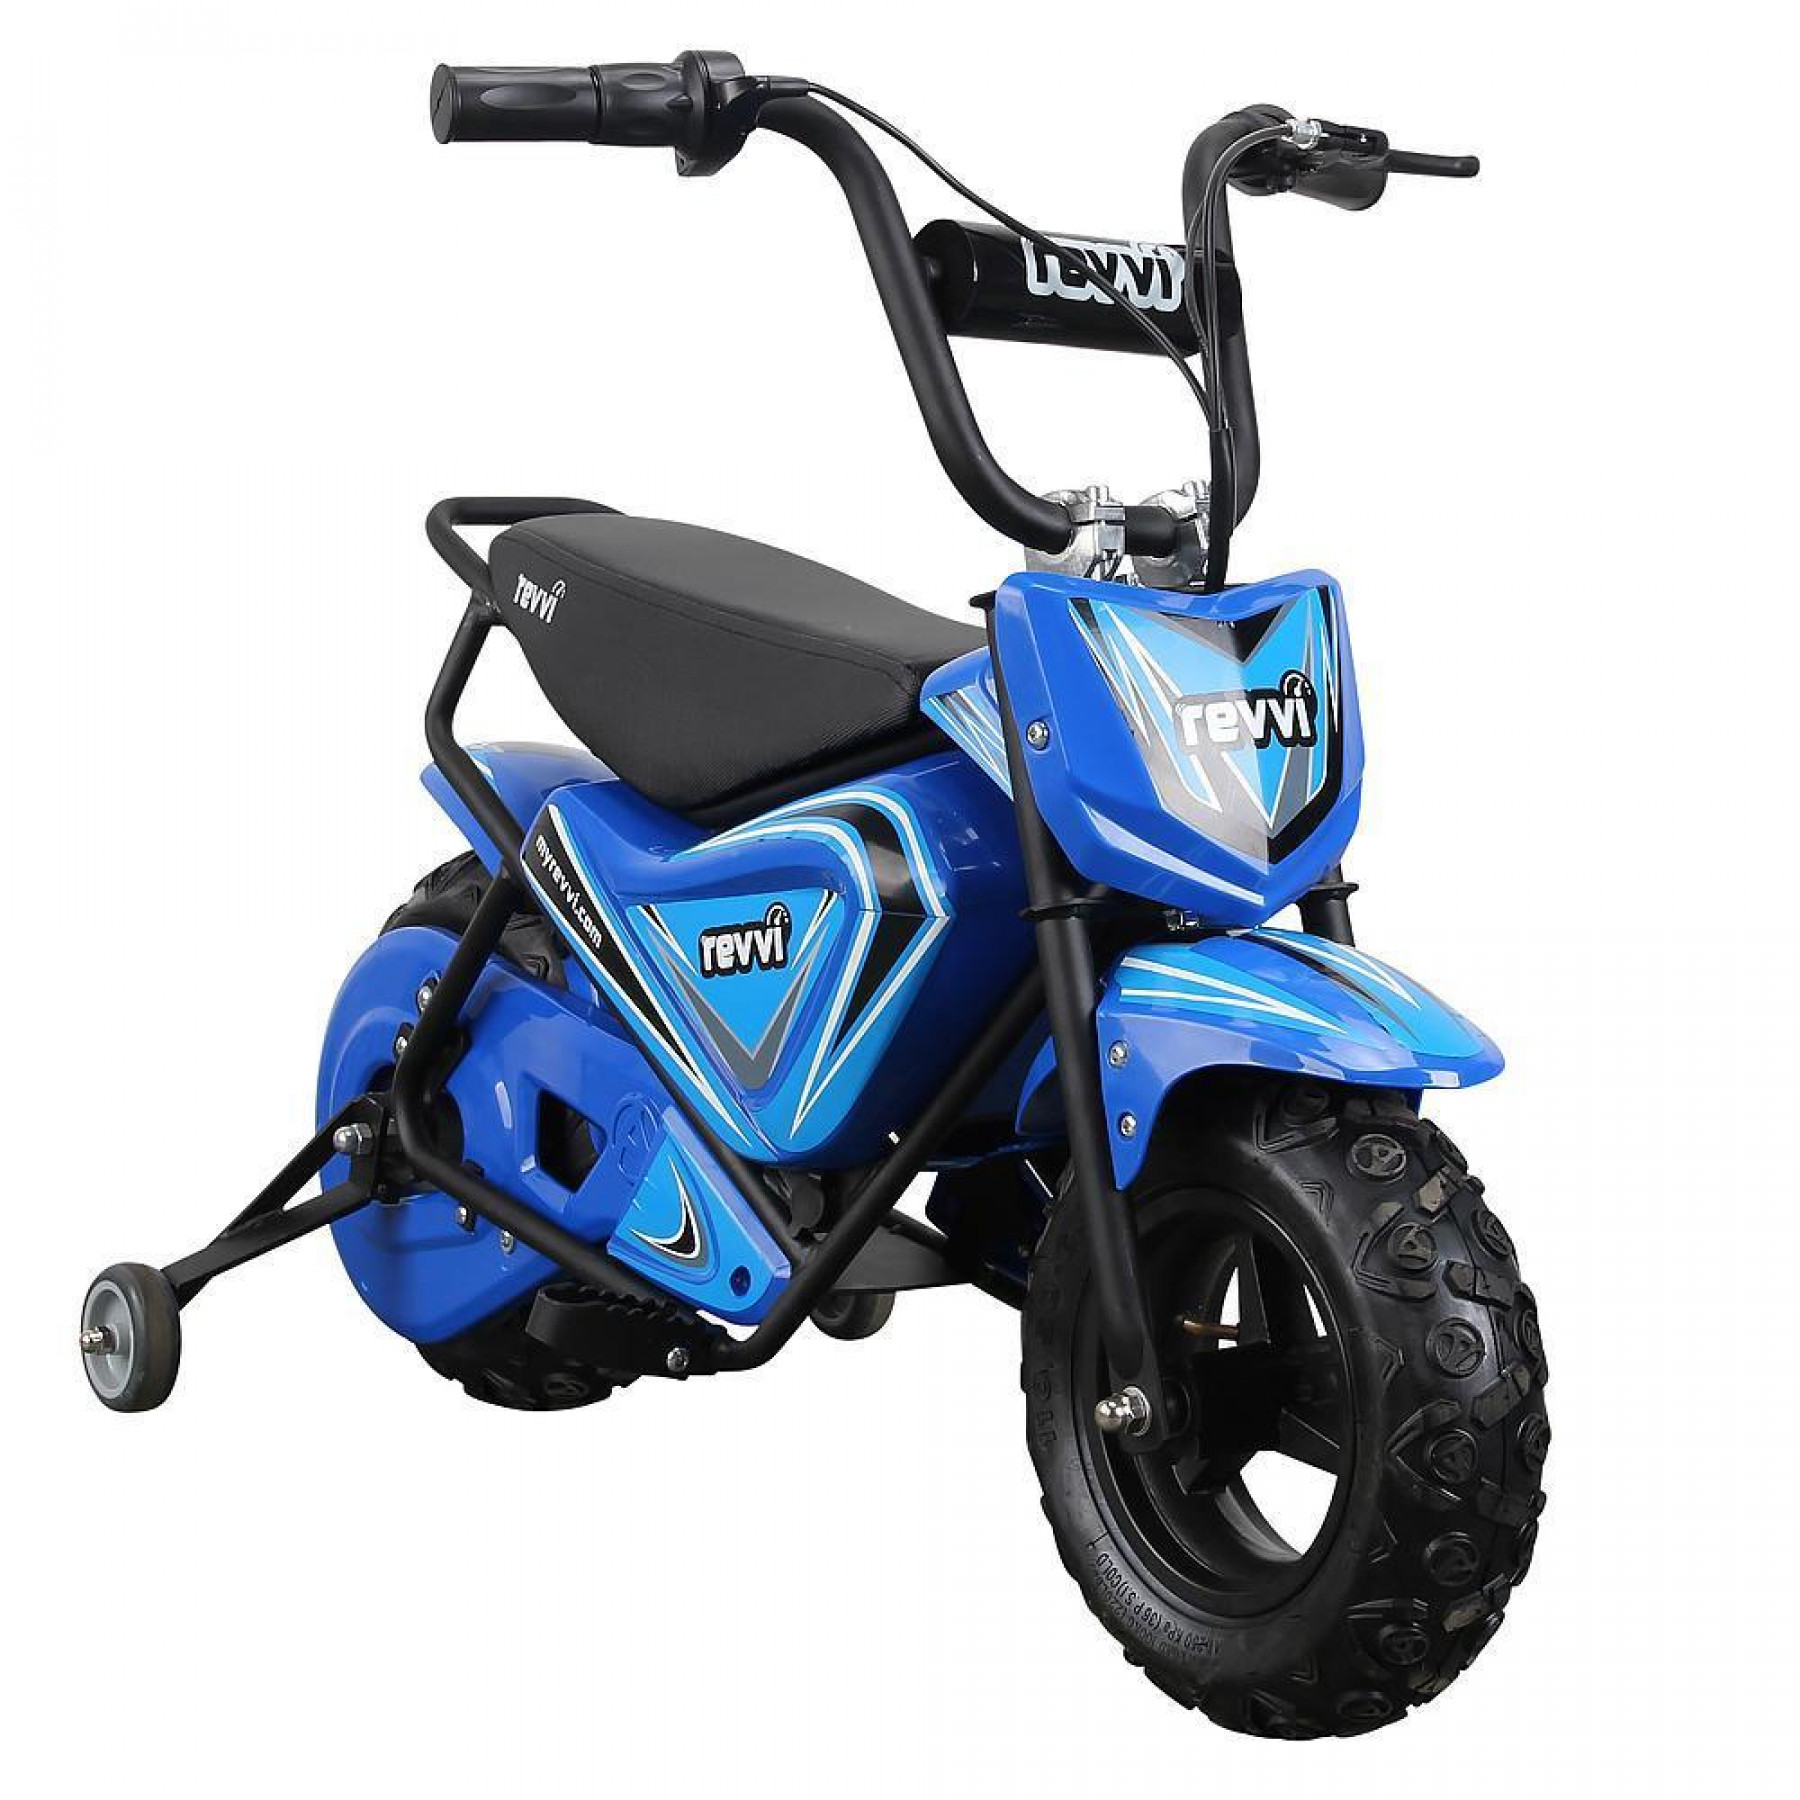 XTREME REVVI 250w FUN BIKE BLUE